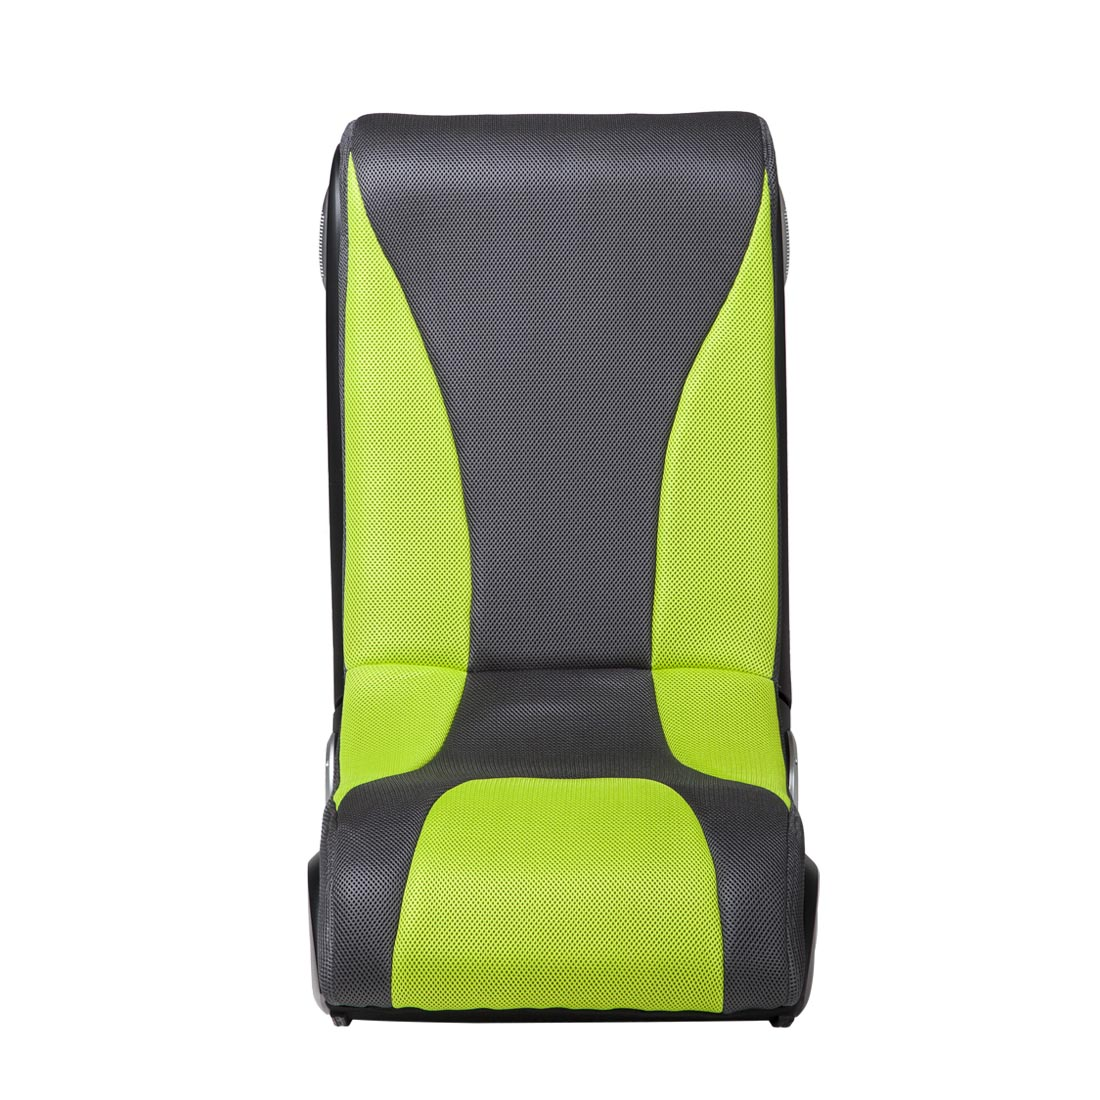 Multi Media Sessel Multimediasessel Ps3 Spiele Multimedia Gaming Chair Sessel